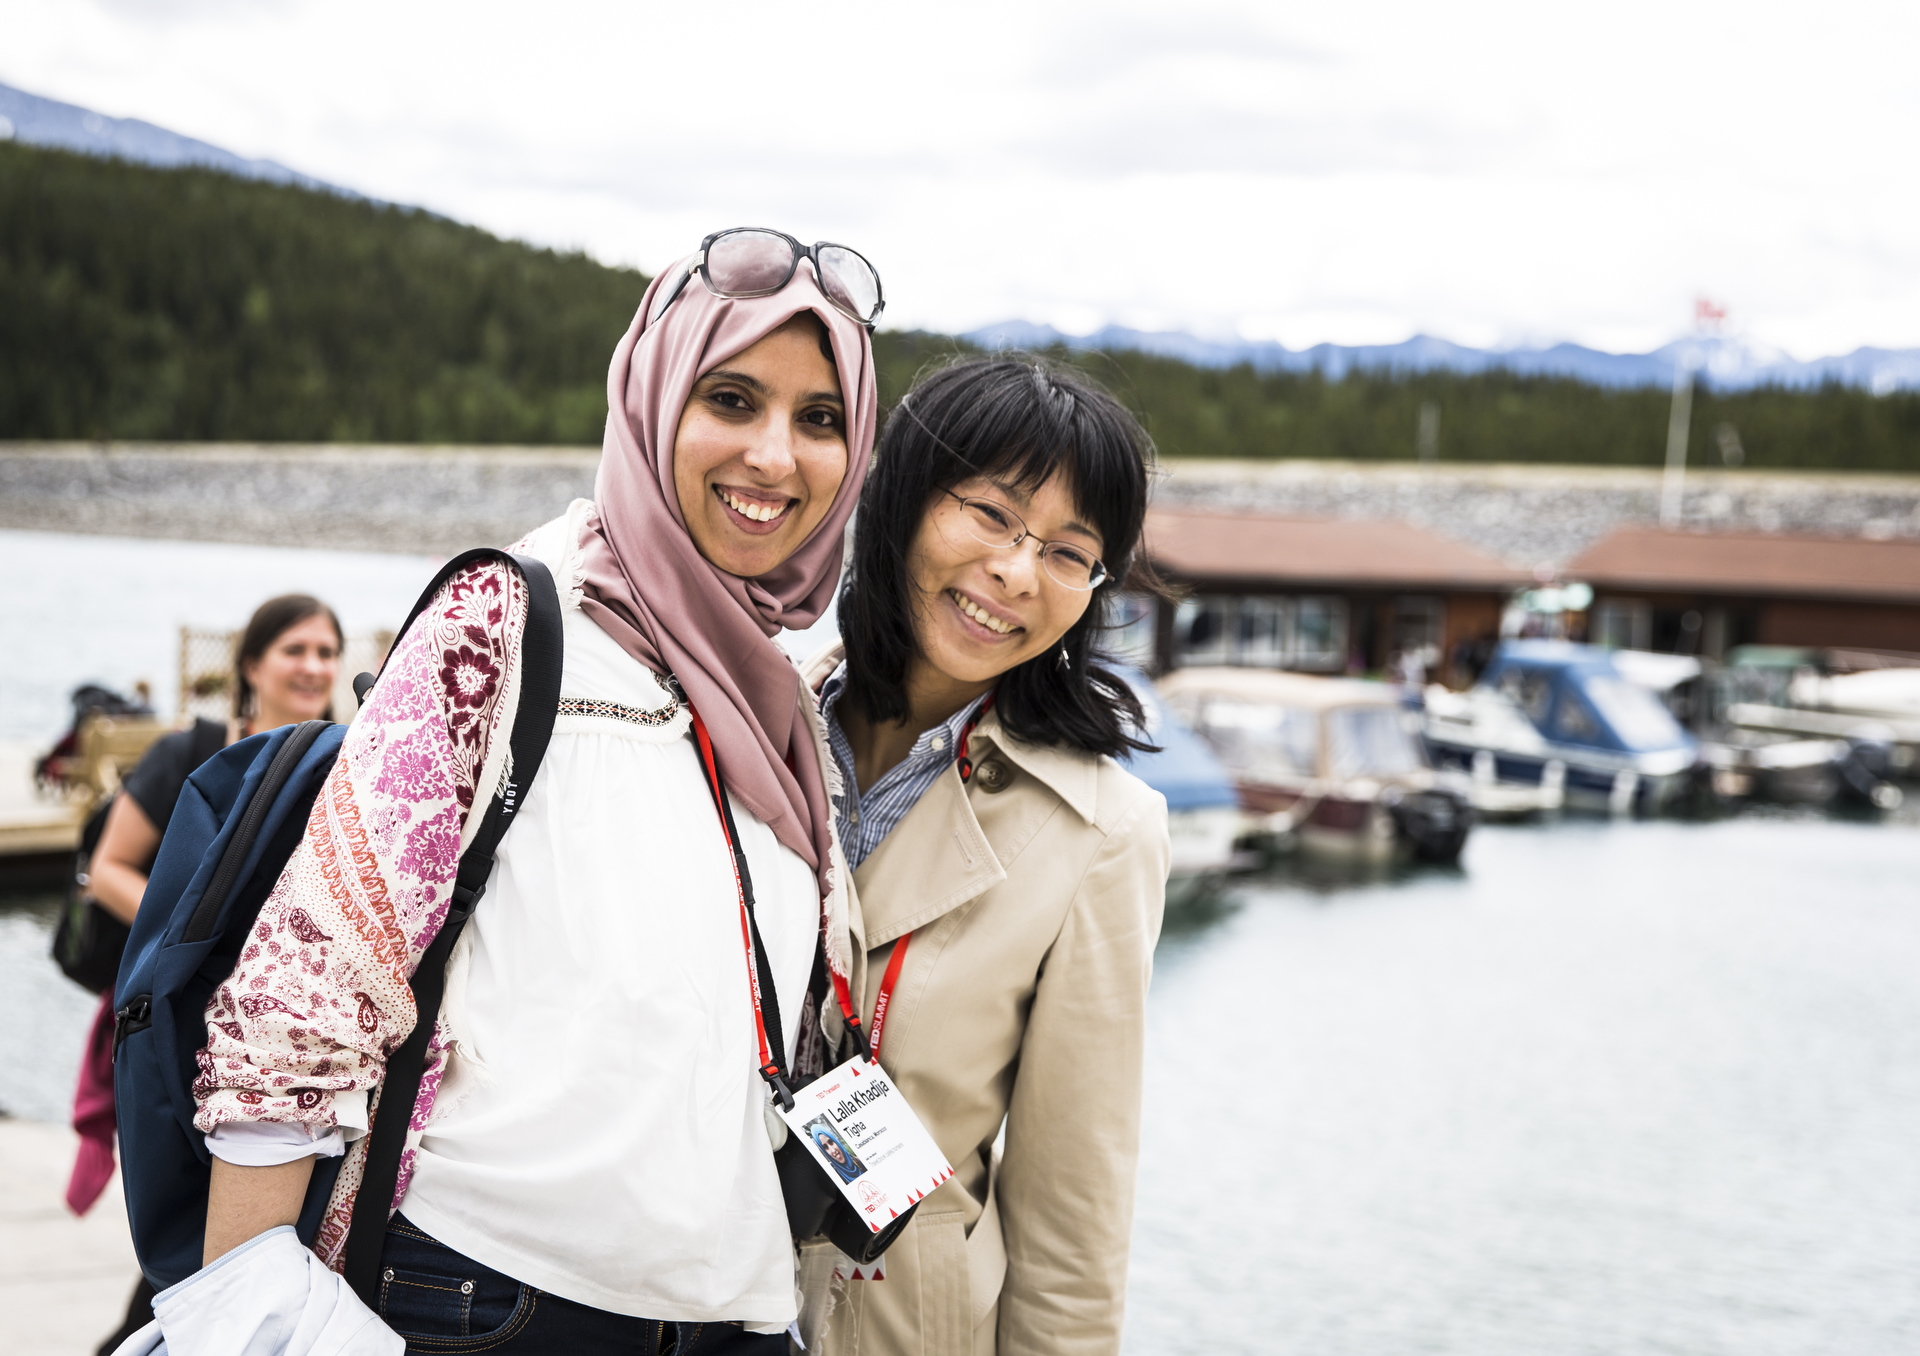 TED Translators connect at the TEDSummit 2016, Banff, Canada. Photo: Marla Aufmuth / TED